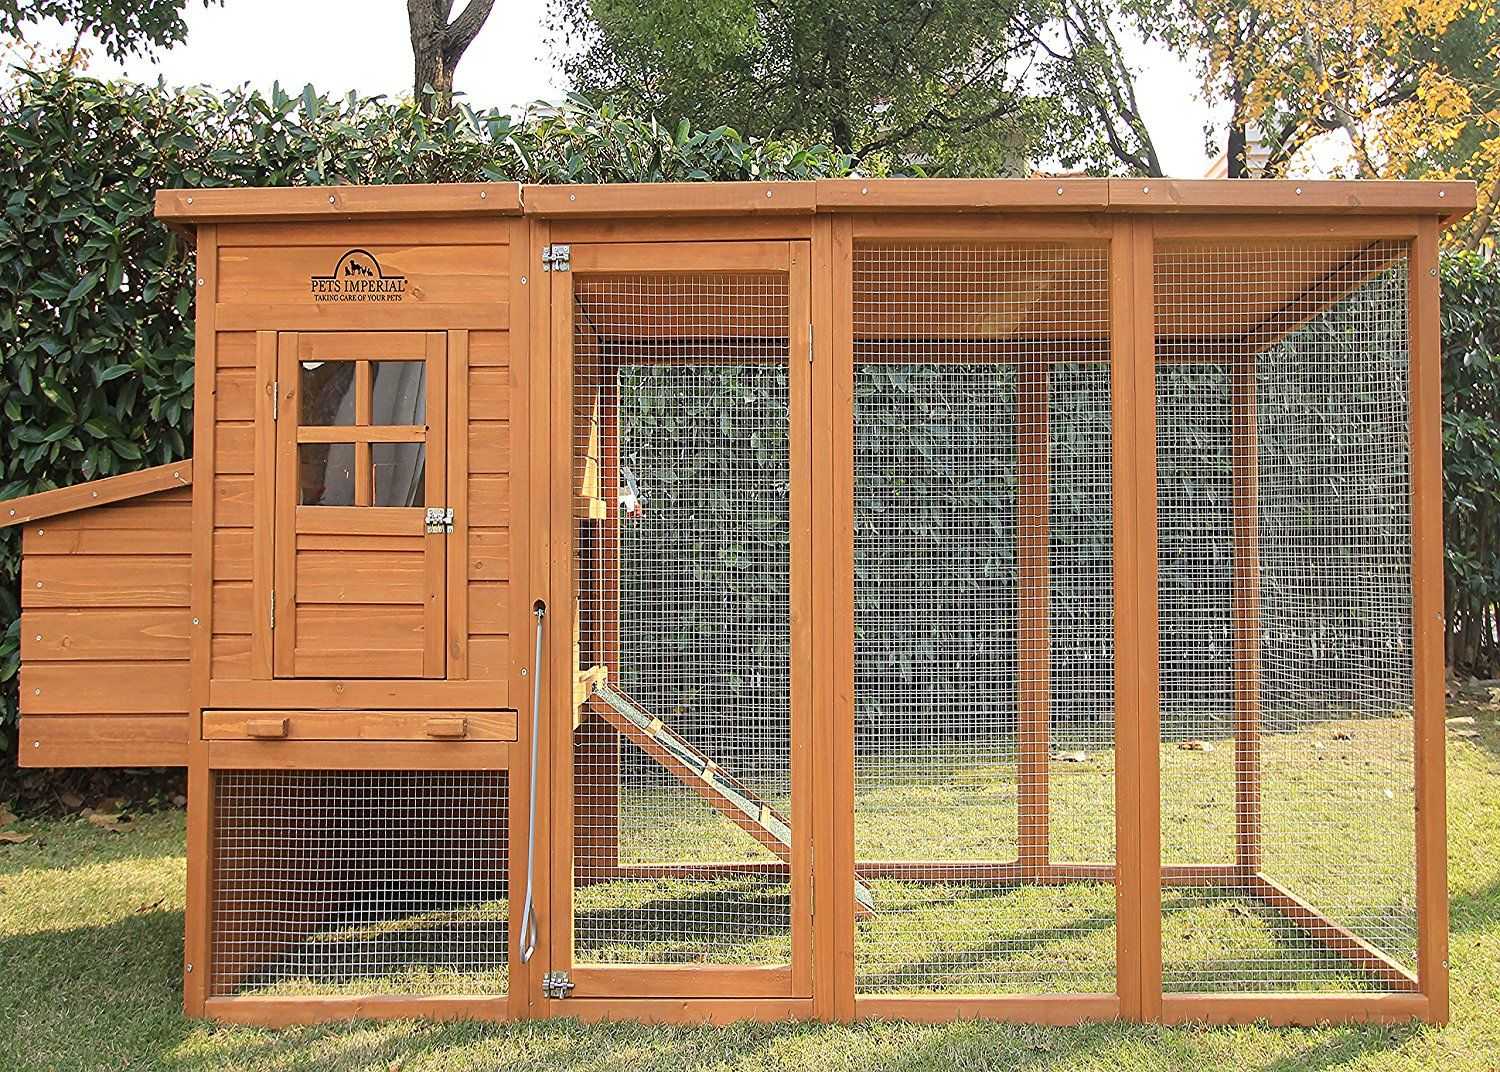 7 Chicken Coops You Can Buy on Amazon Diy chicken coop